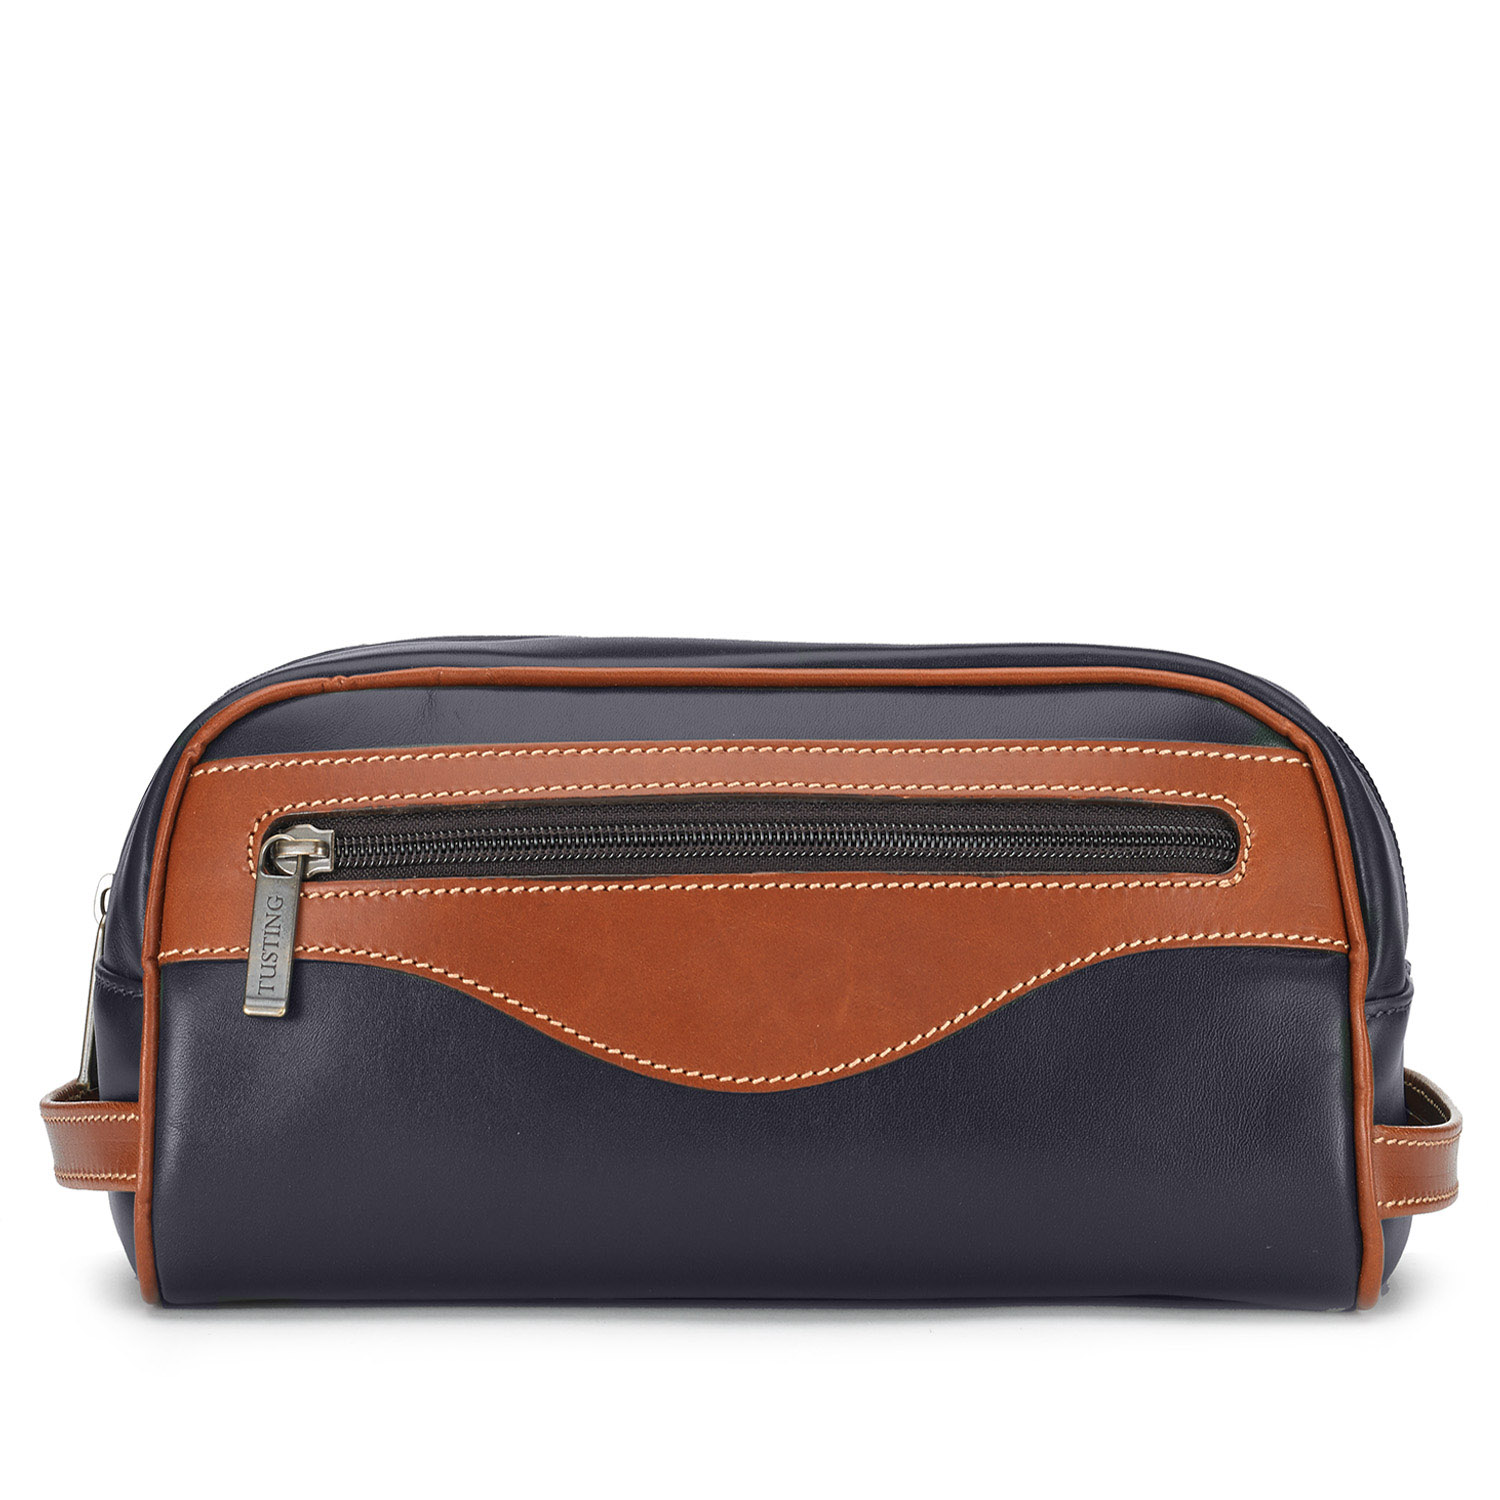 Tusting Leather Washbag in Navy with Tan Trim